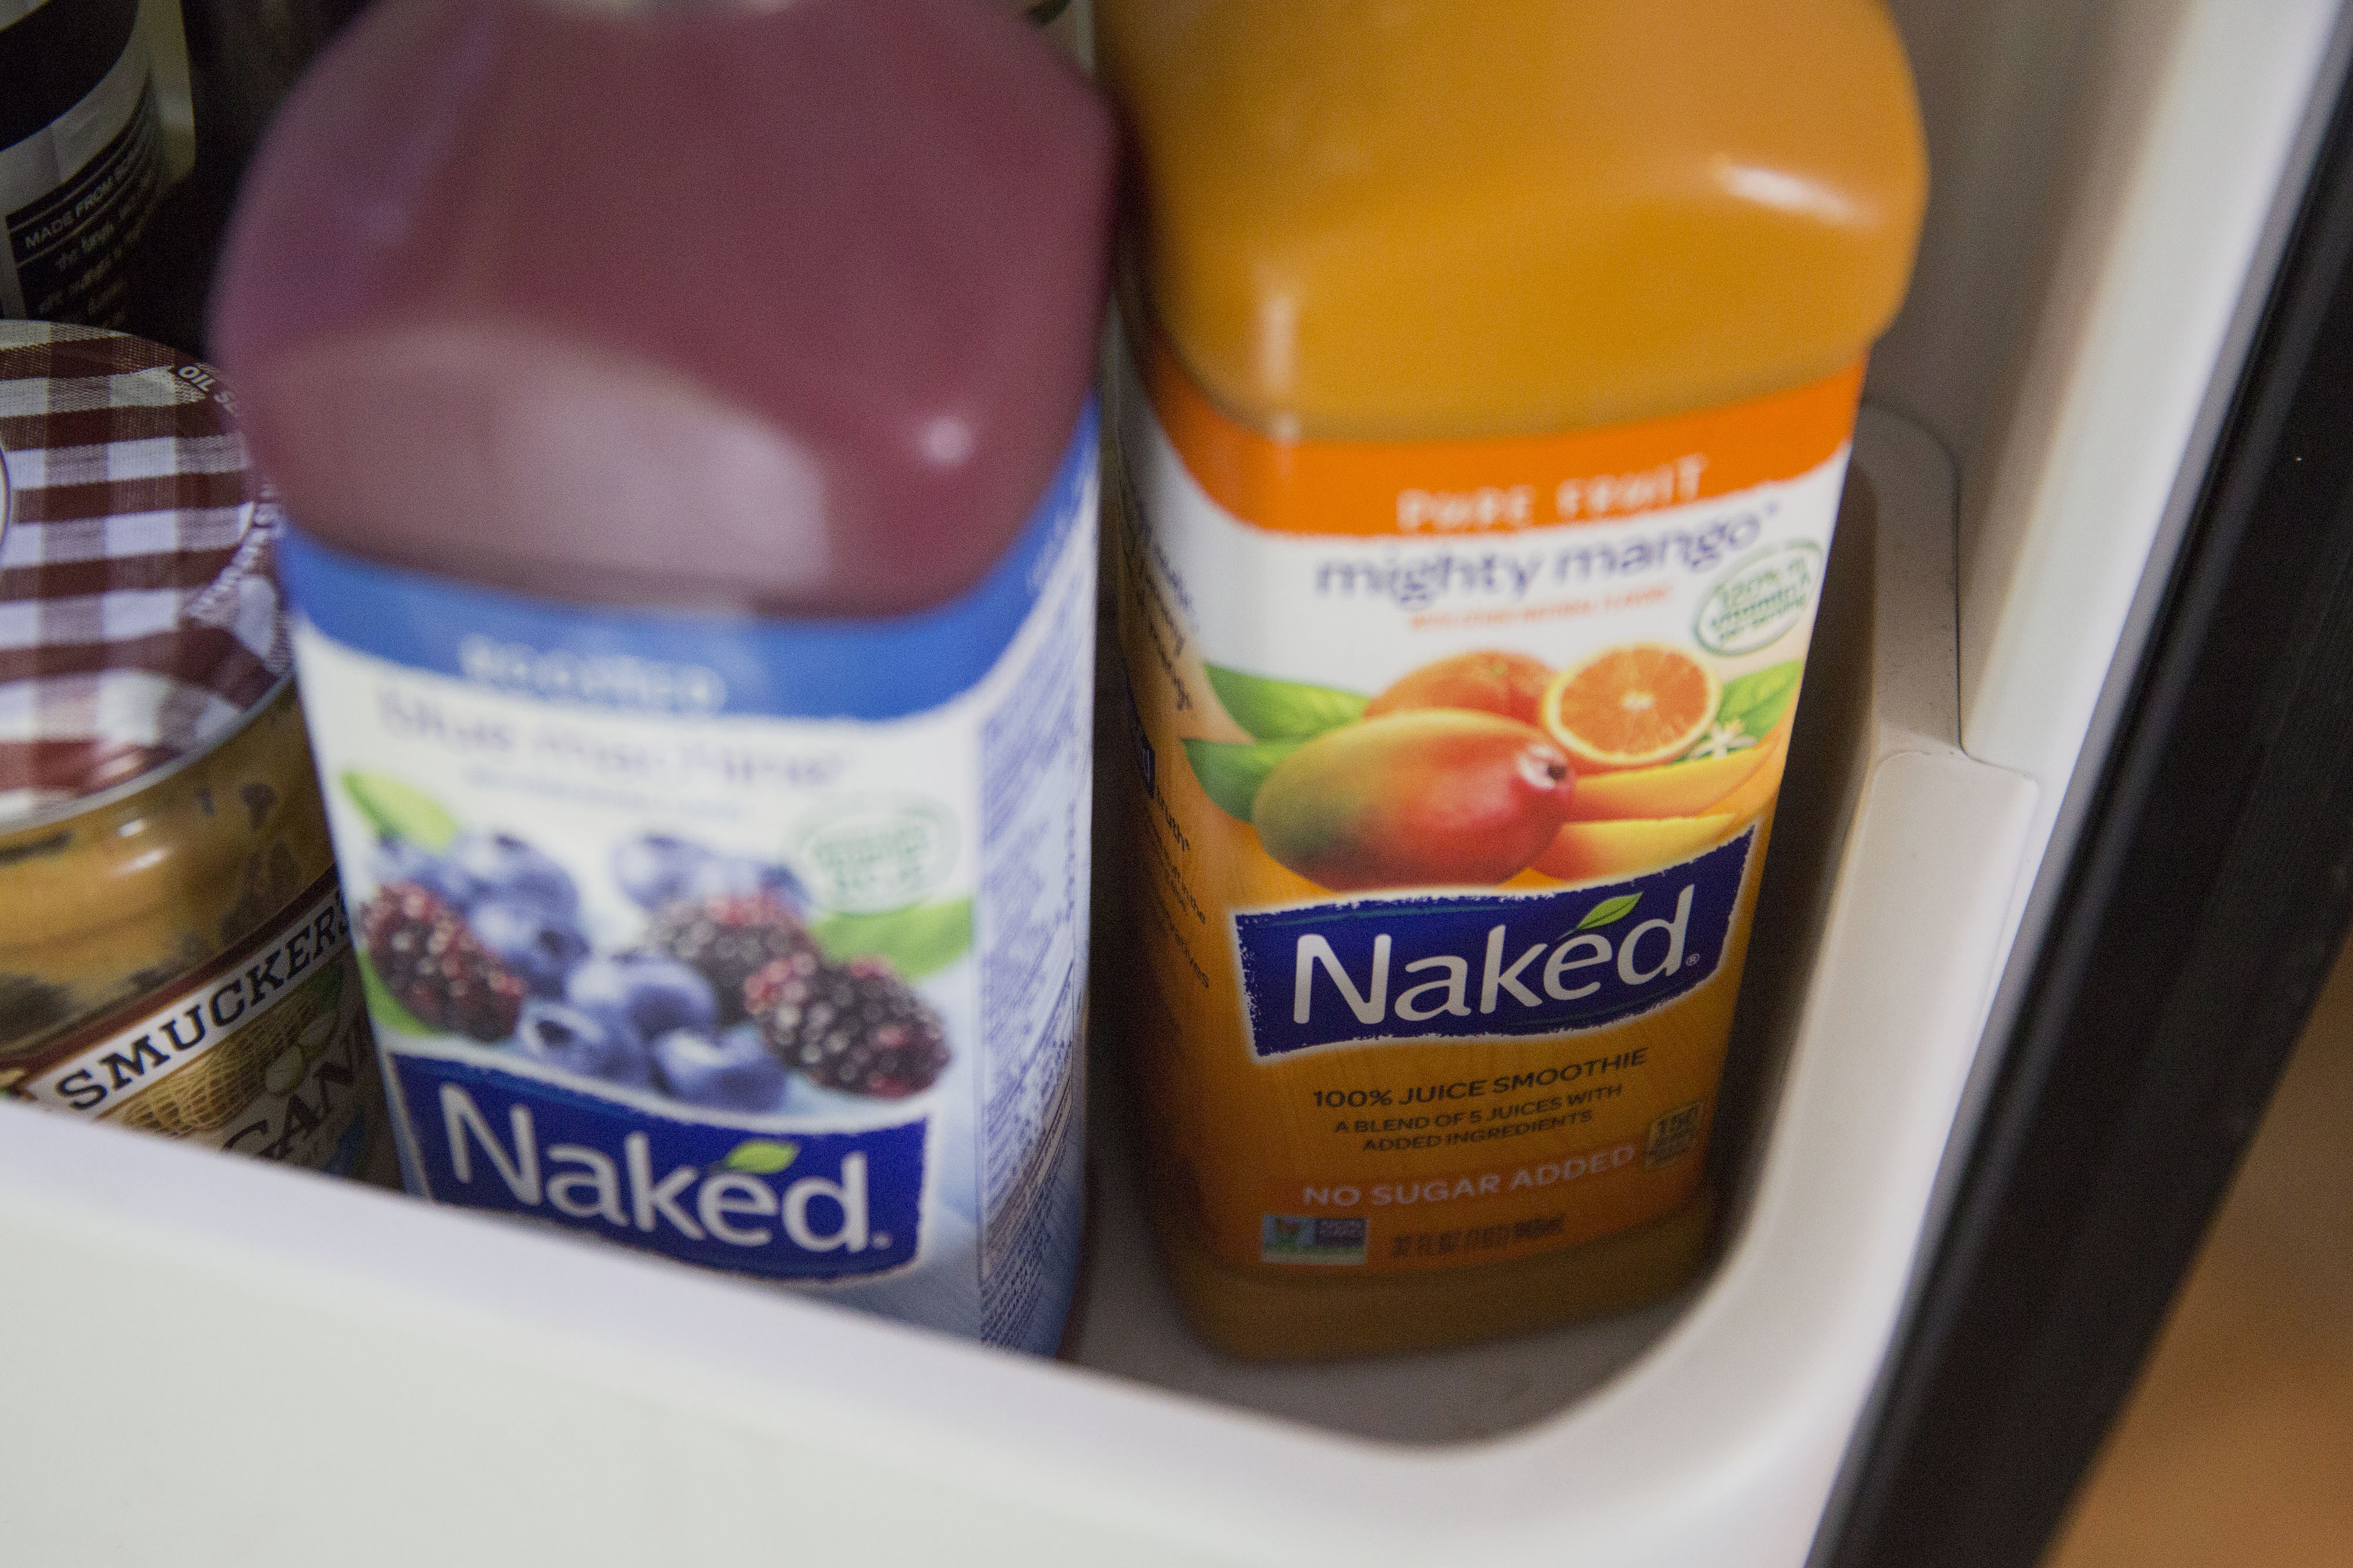 Bottles of PepsiCo Inc. Naked brand juice smoothies are arranged for a photograph in Tiskilwa, Illinois, U.S., on Thursday, July 2, 2015. PepsiCo Inc. is expected to report quarterly earnings on July 9, 2015.